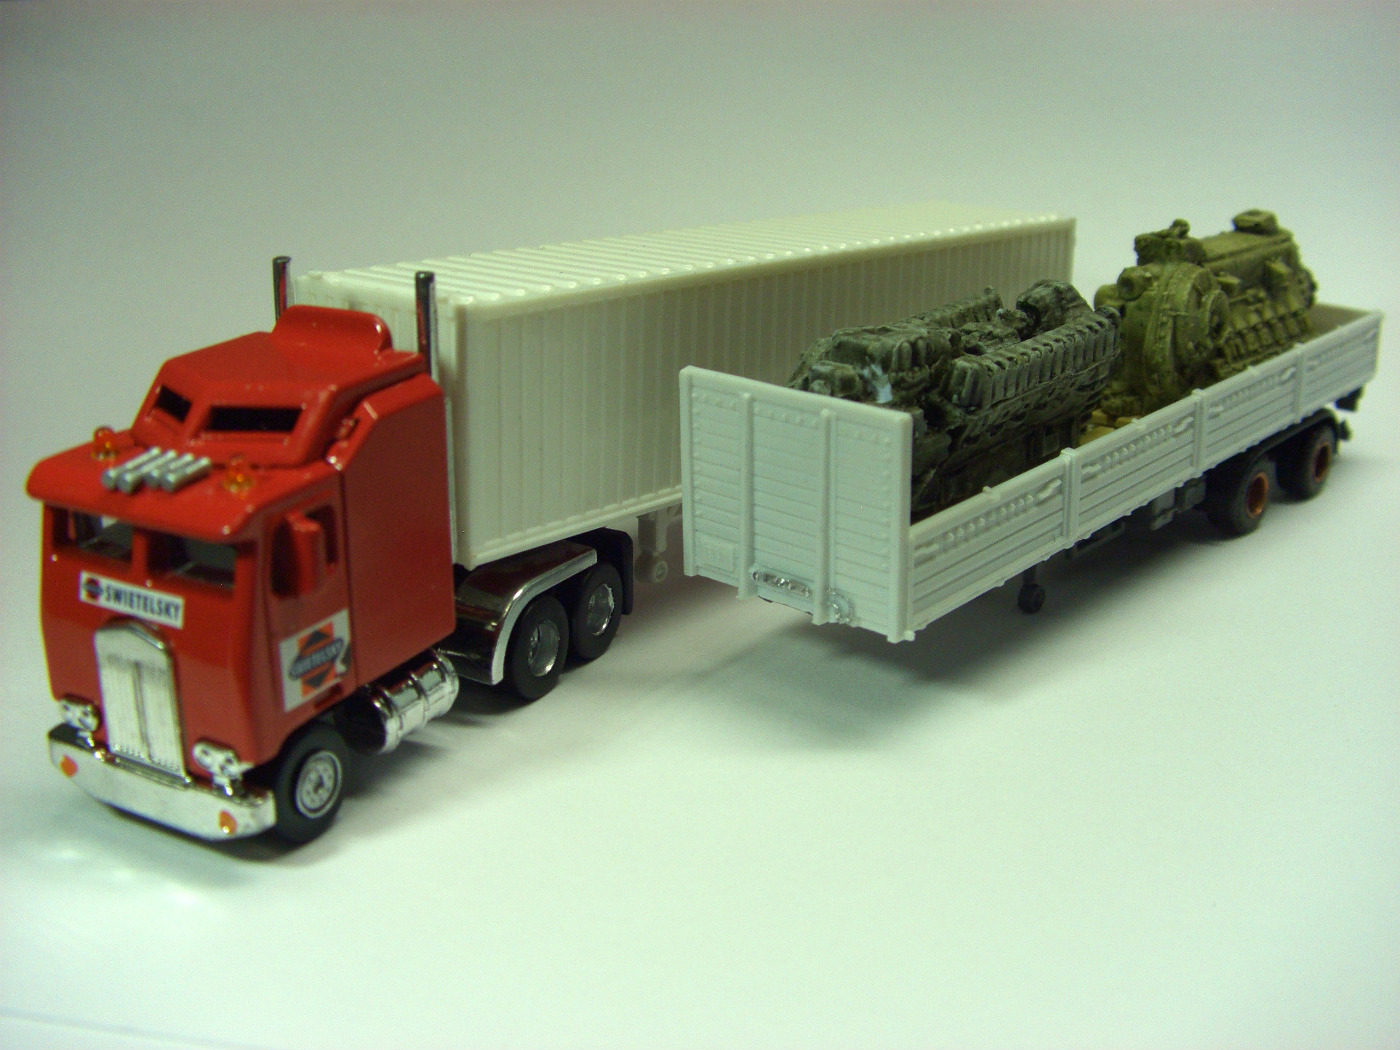 Toy Tractor Trailer Trucks : Toy trucks trailers ebay autos post